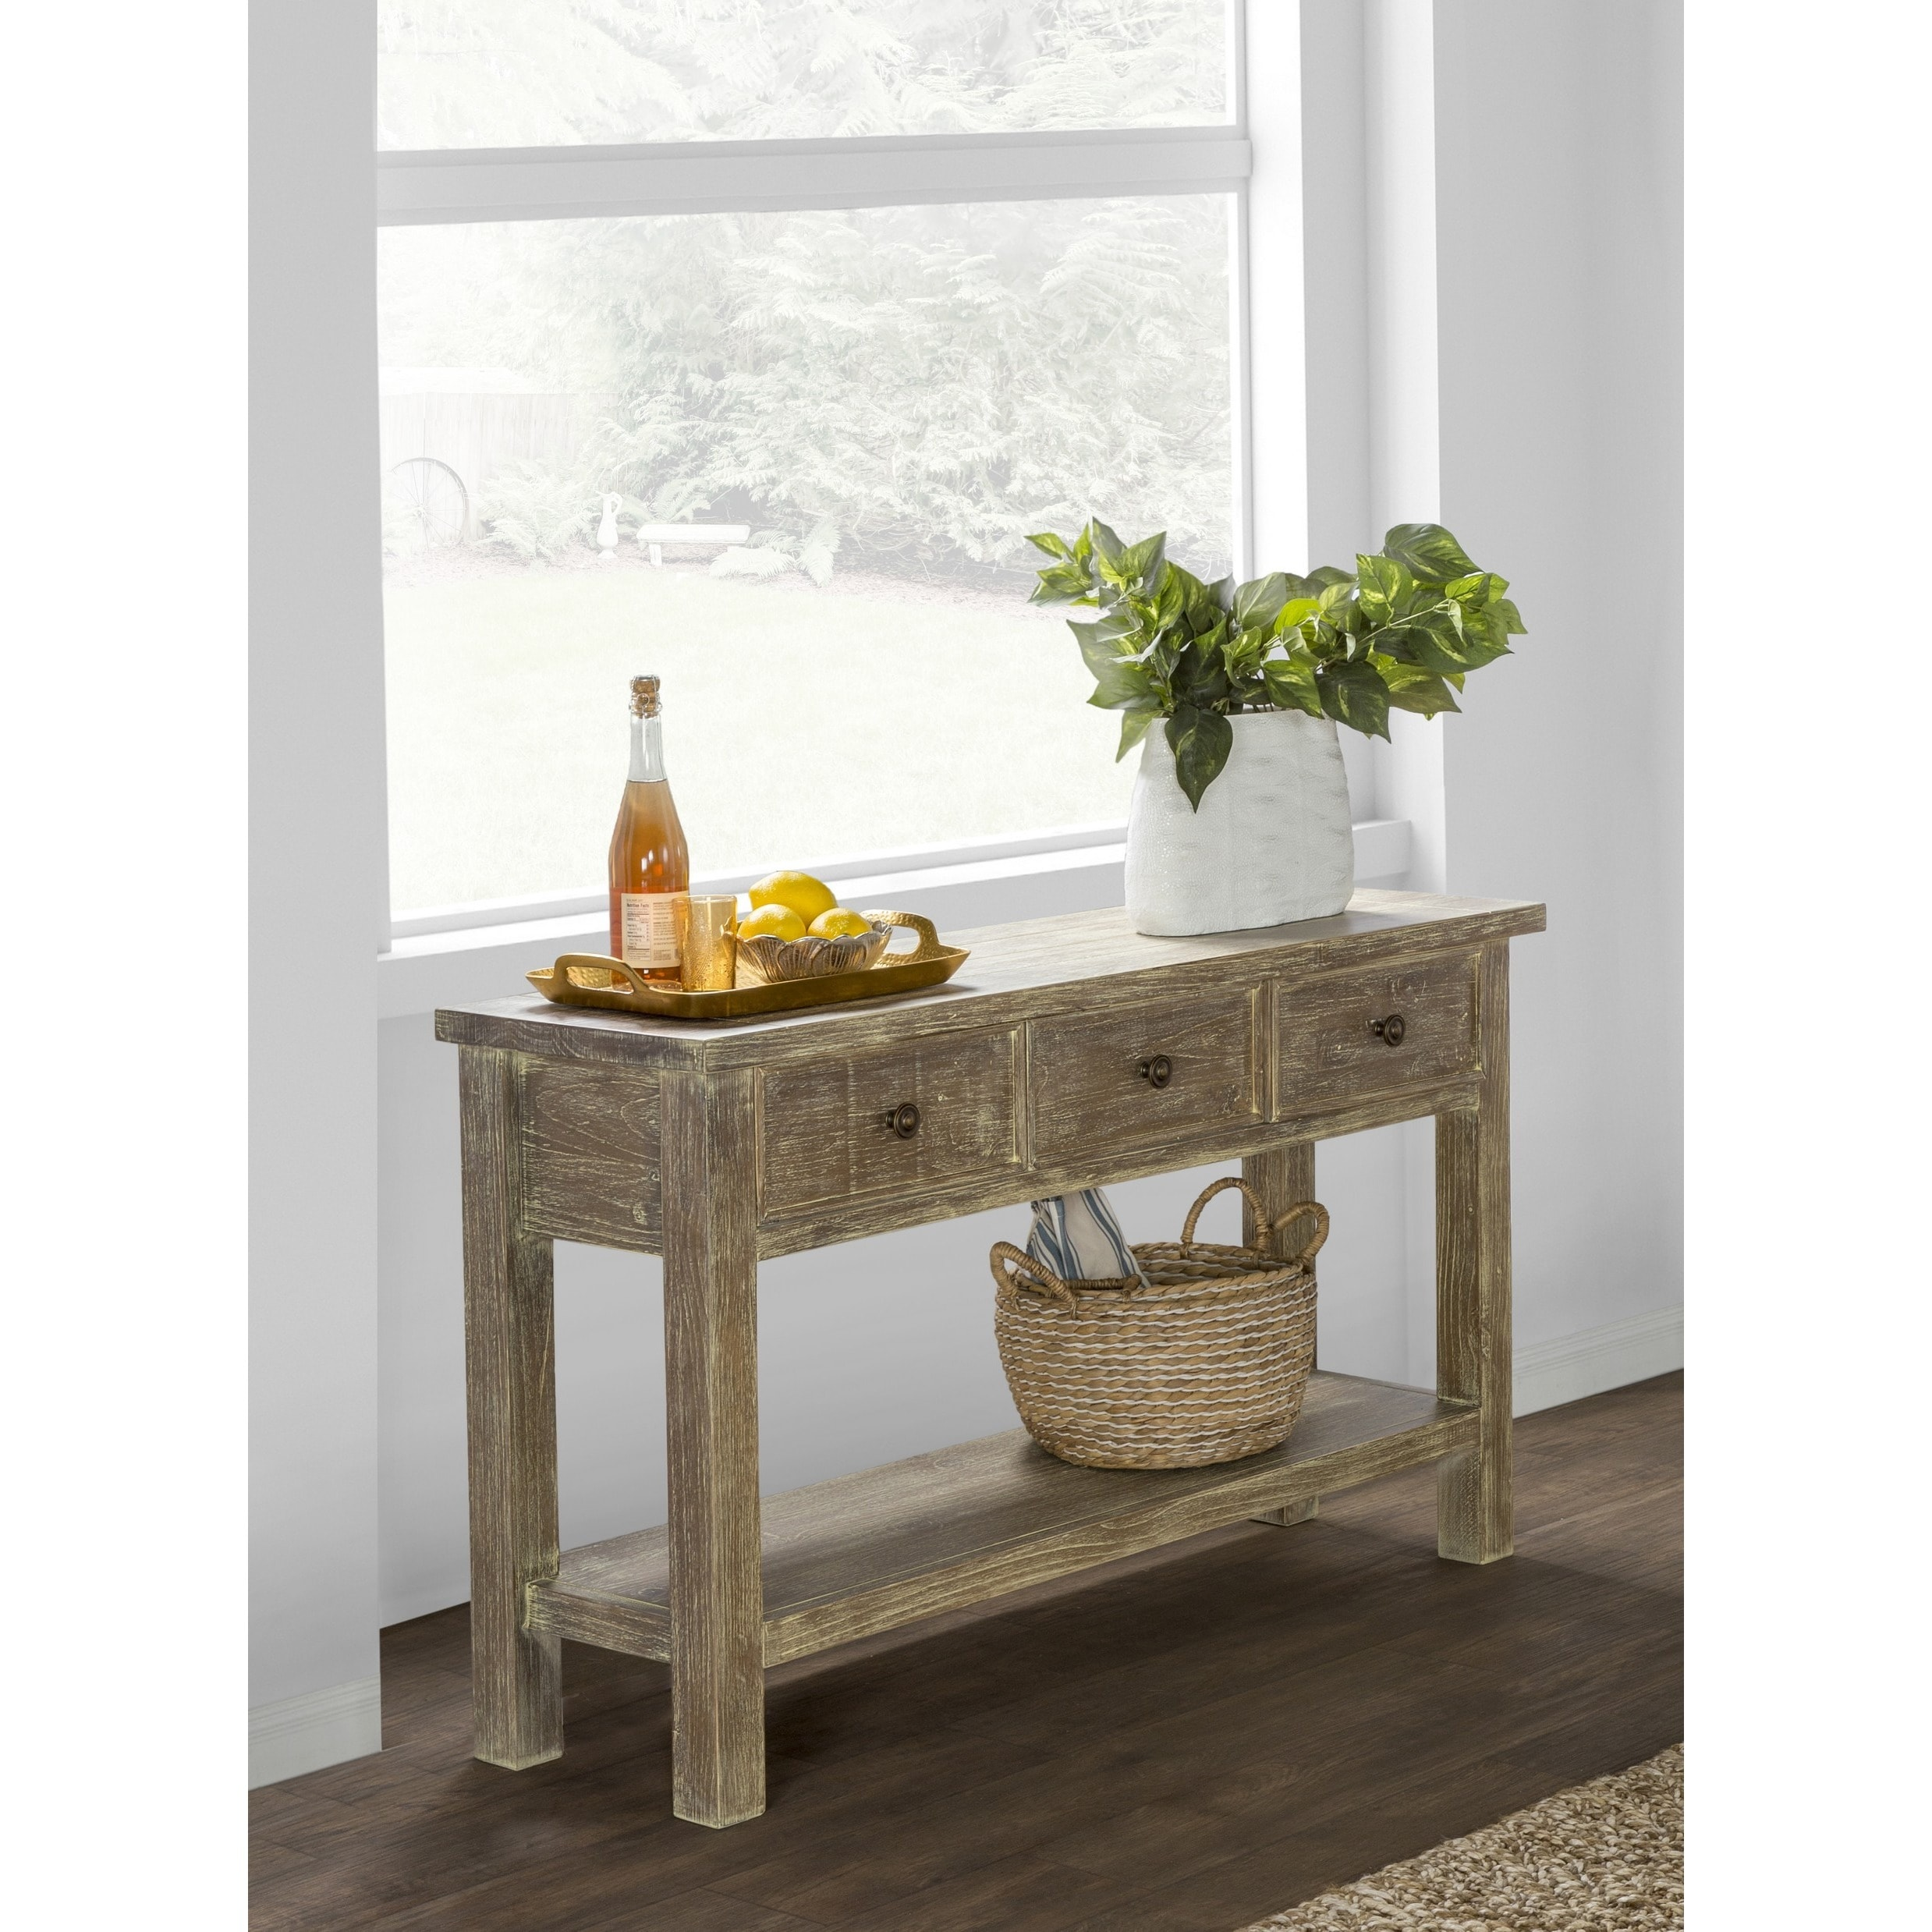 Rockie Rustic Wood Console Table By Kosas Home On Free Shipping Today 10353659